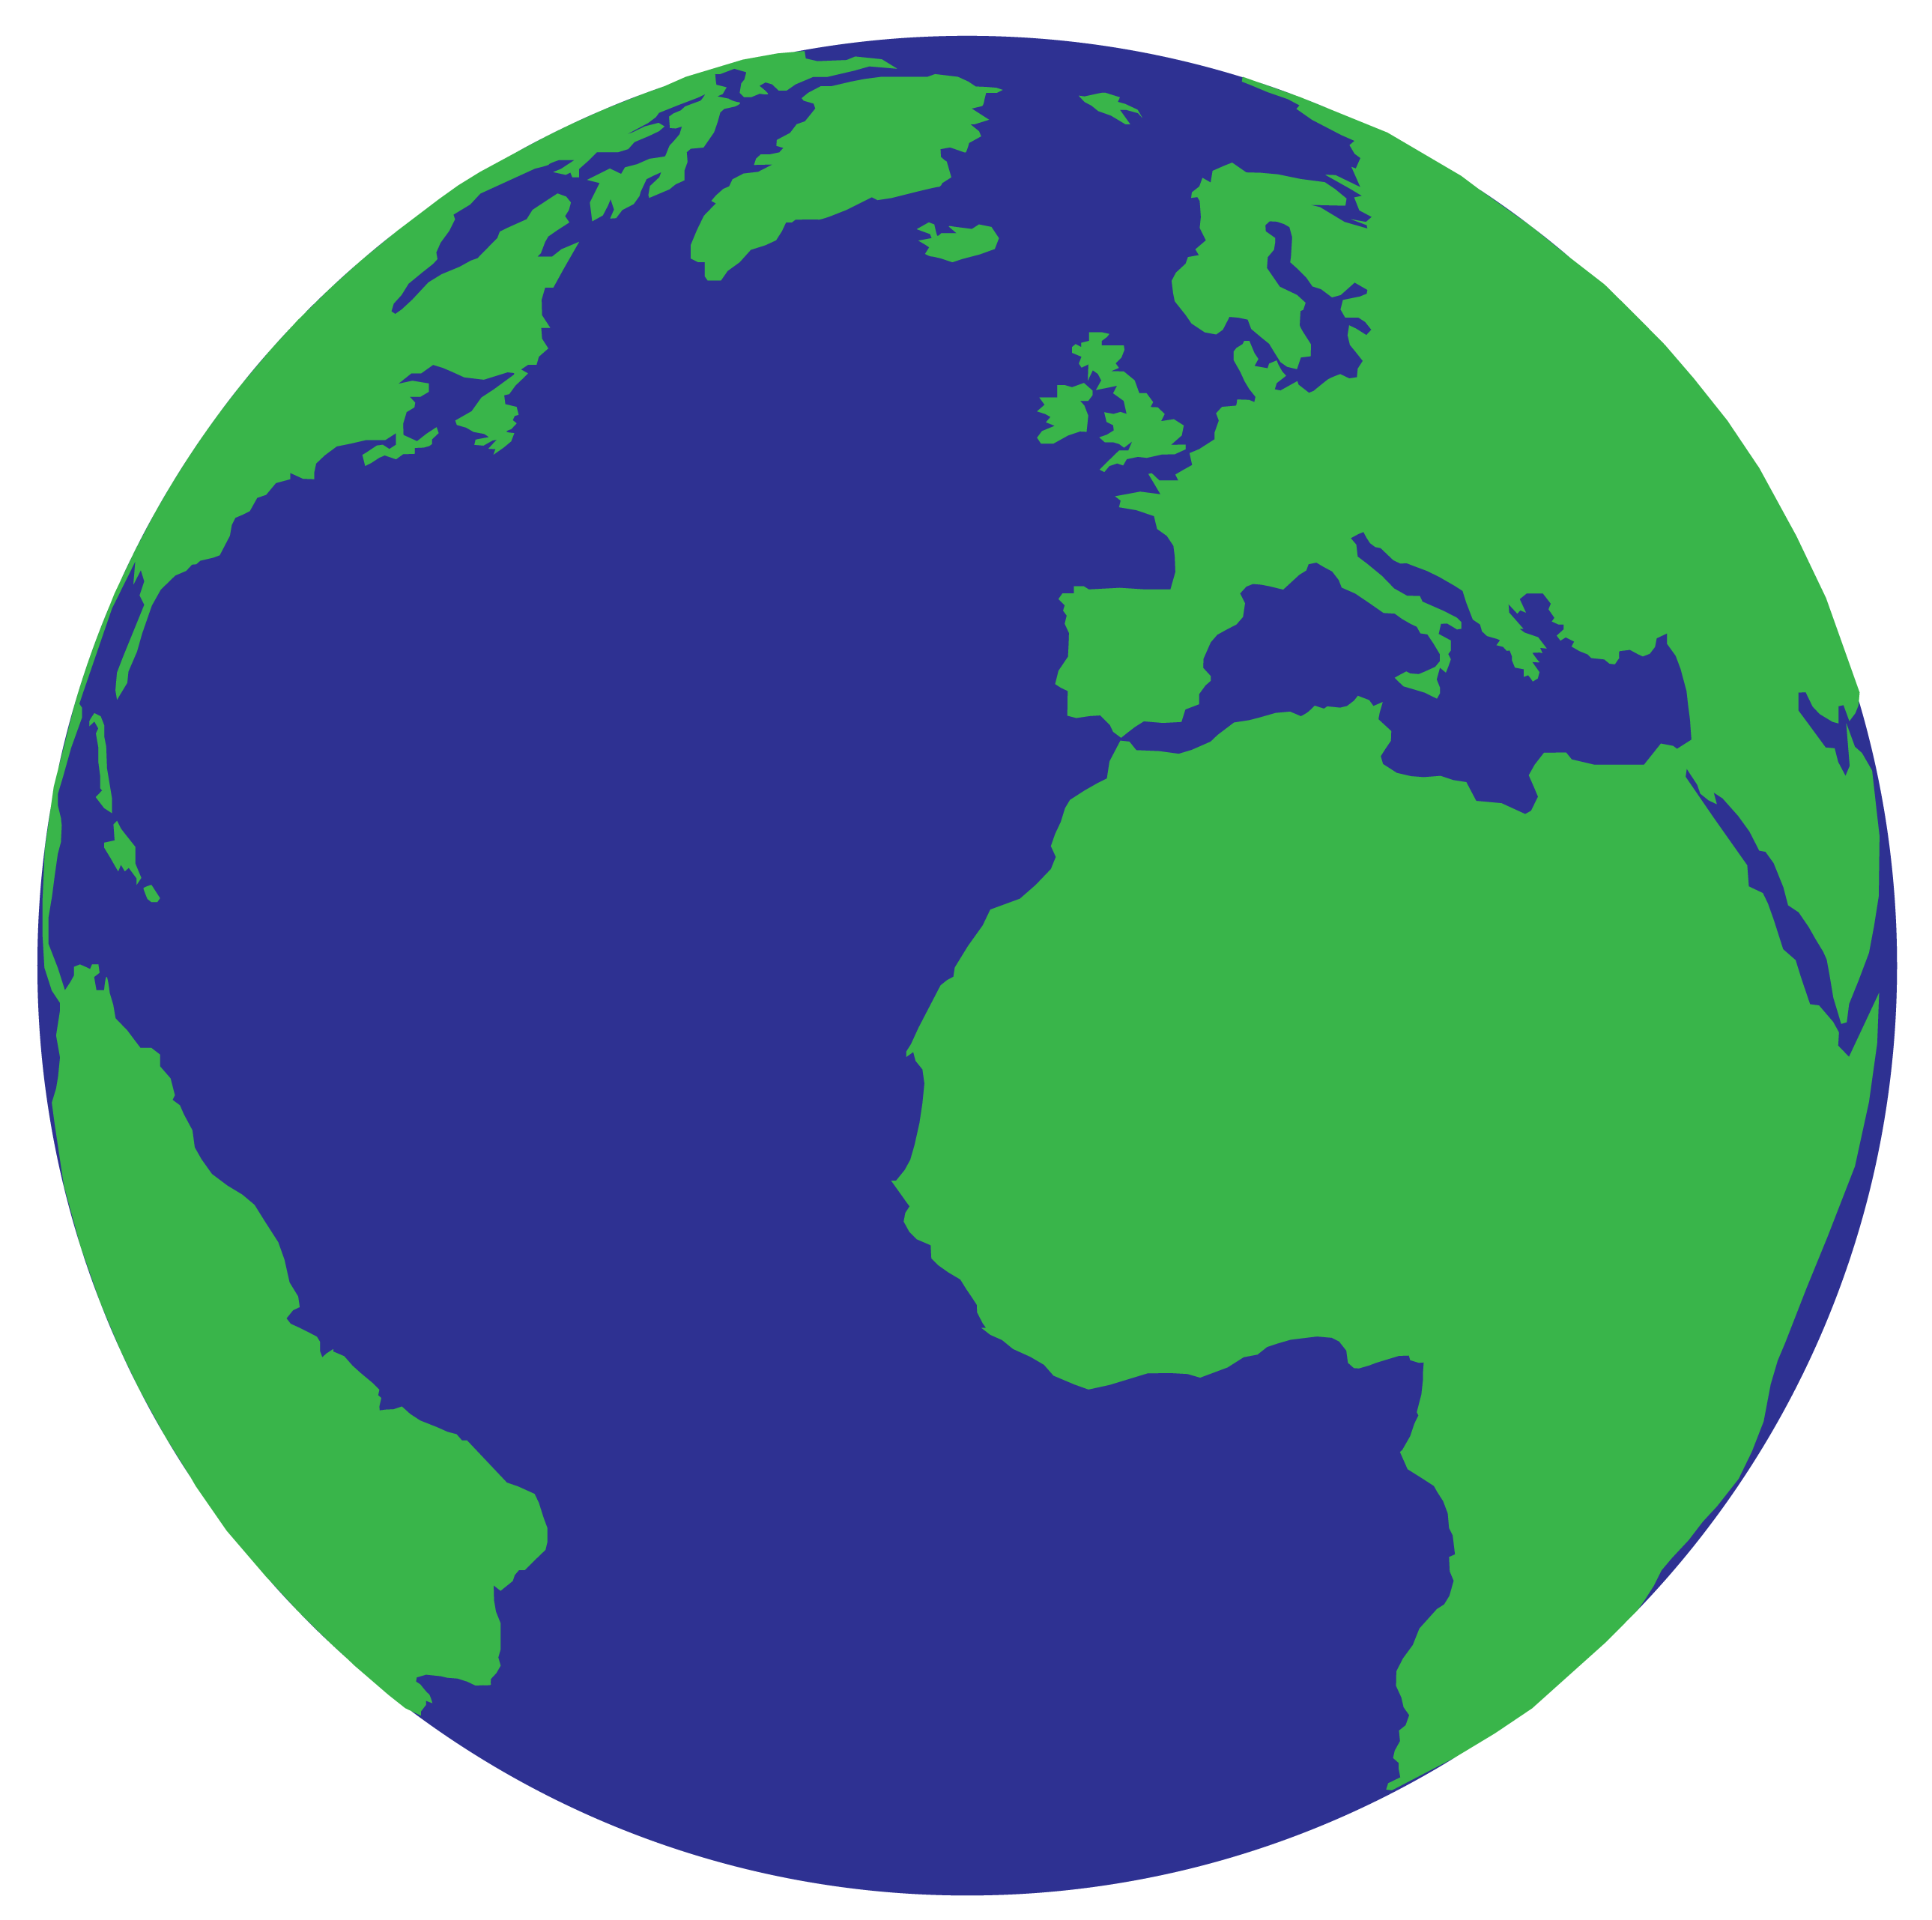 Earth Vector Graphic